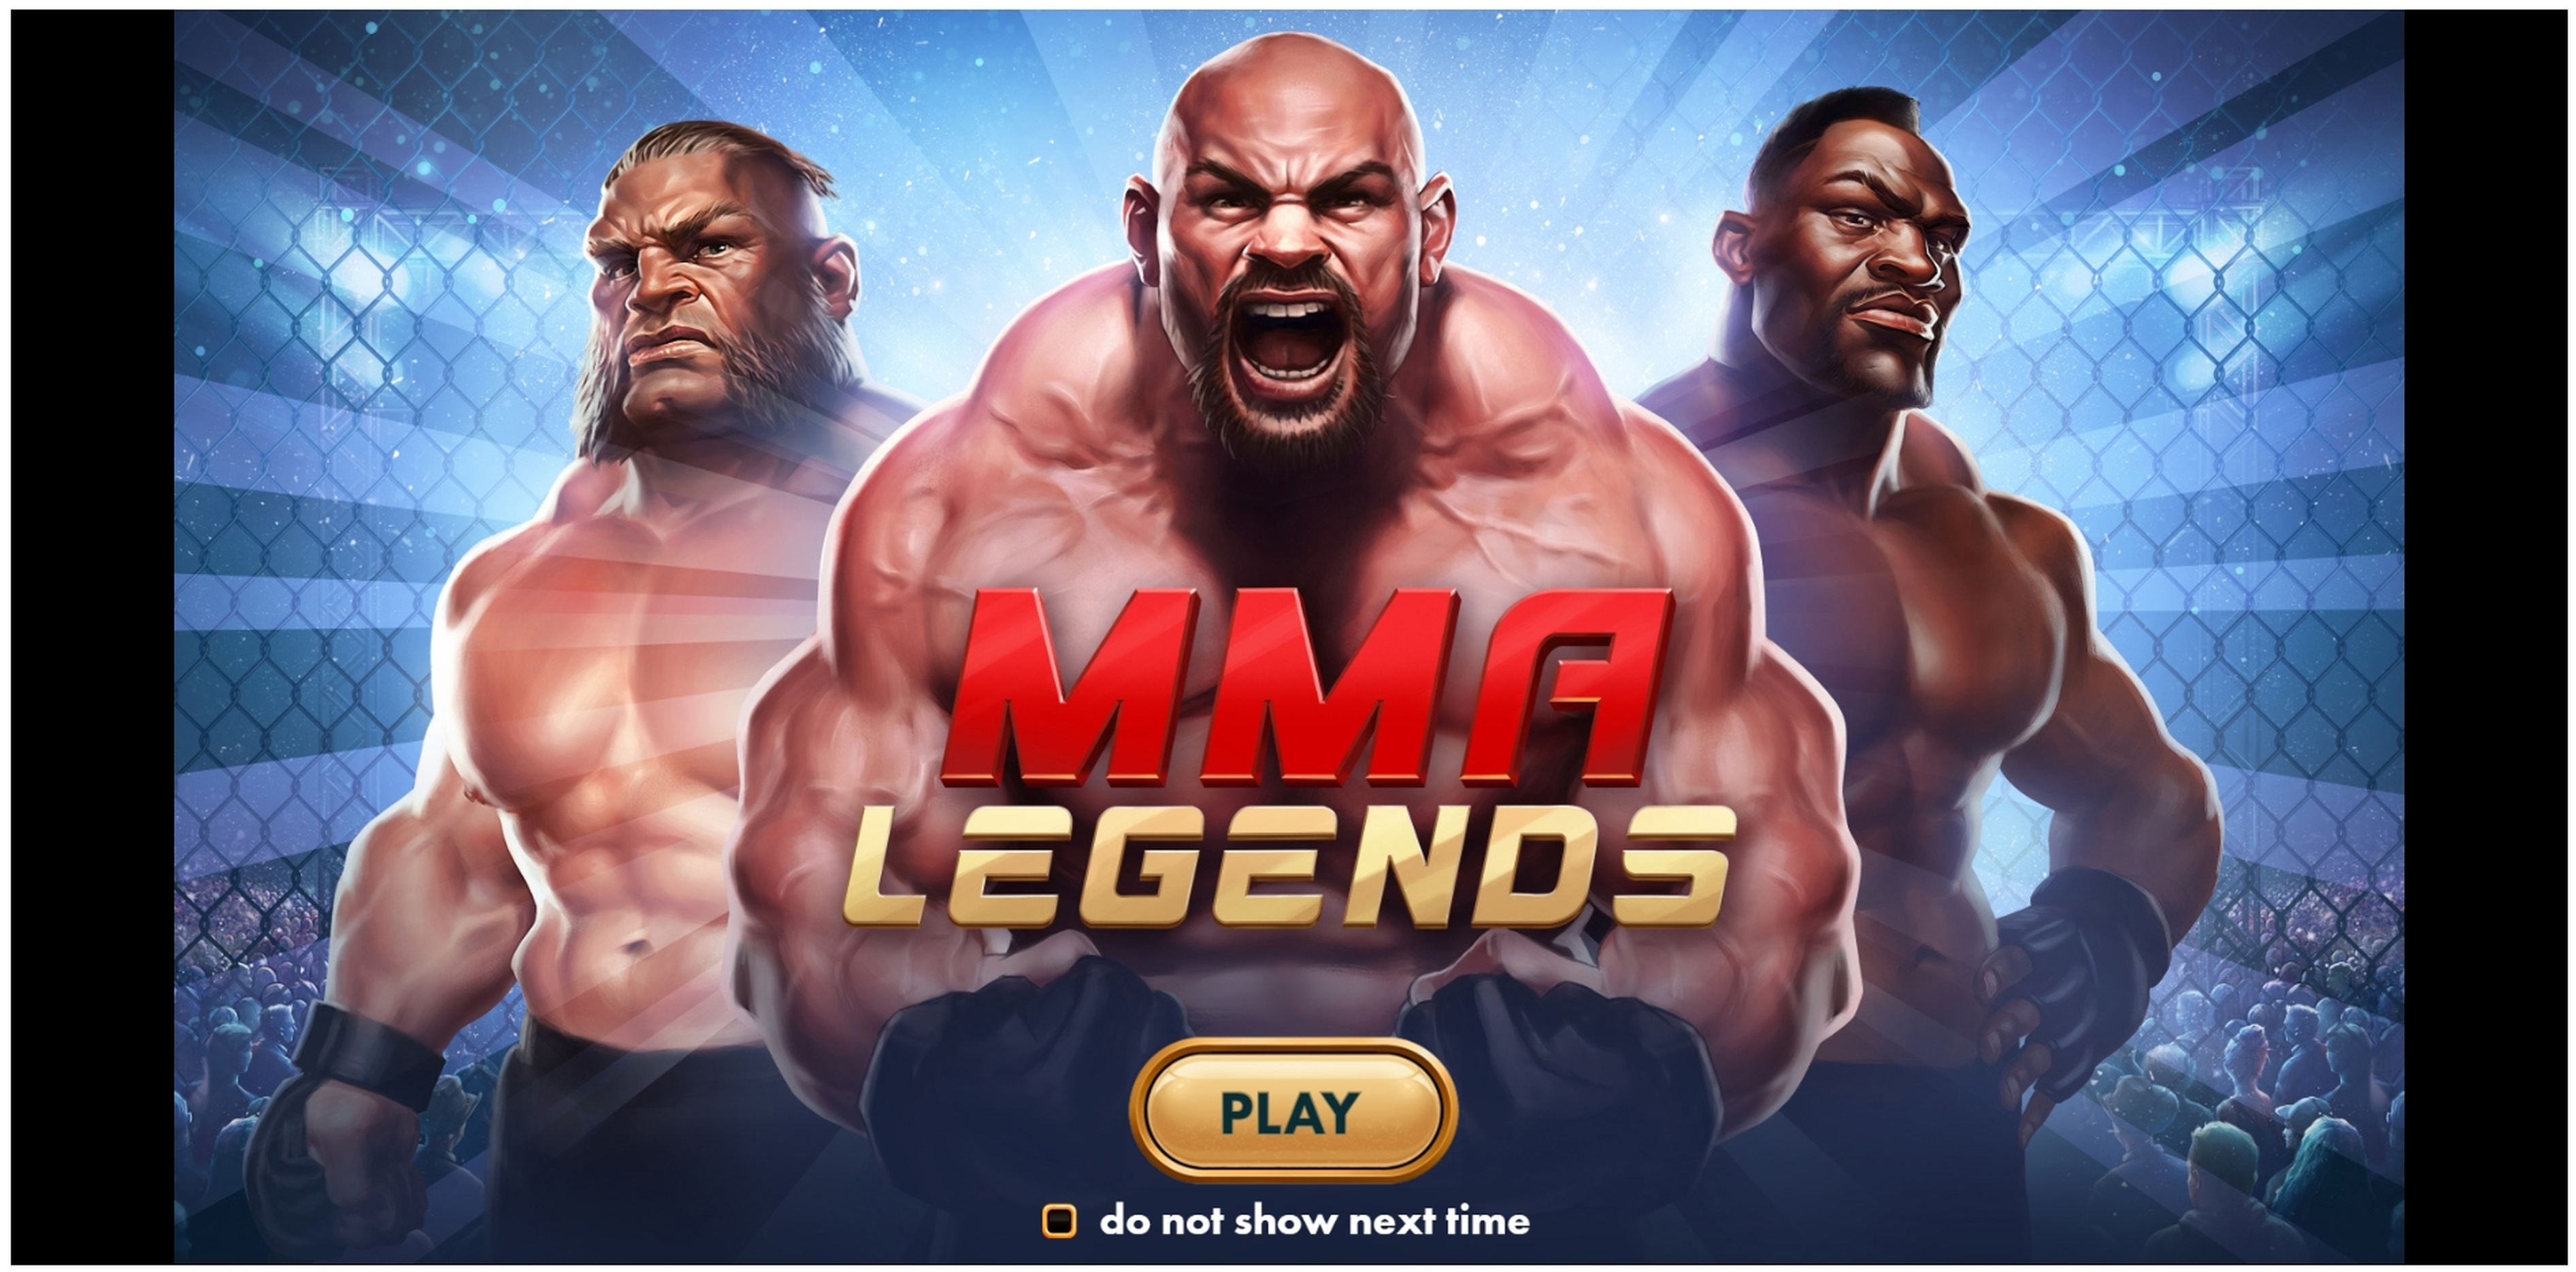 Play MMA Legends Free Casino Slot Game by NetGame